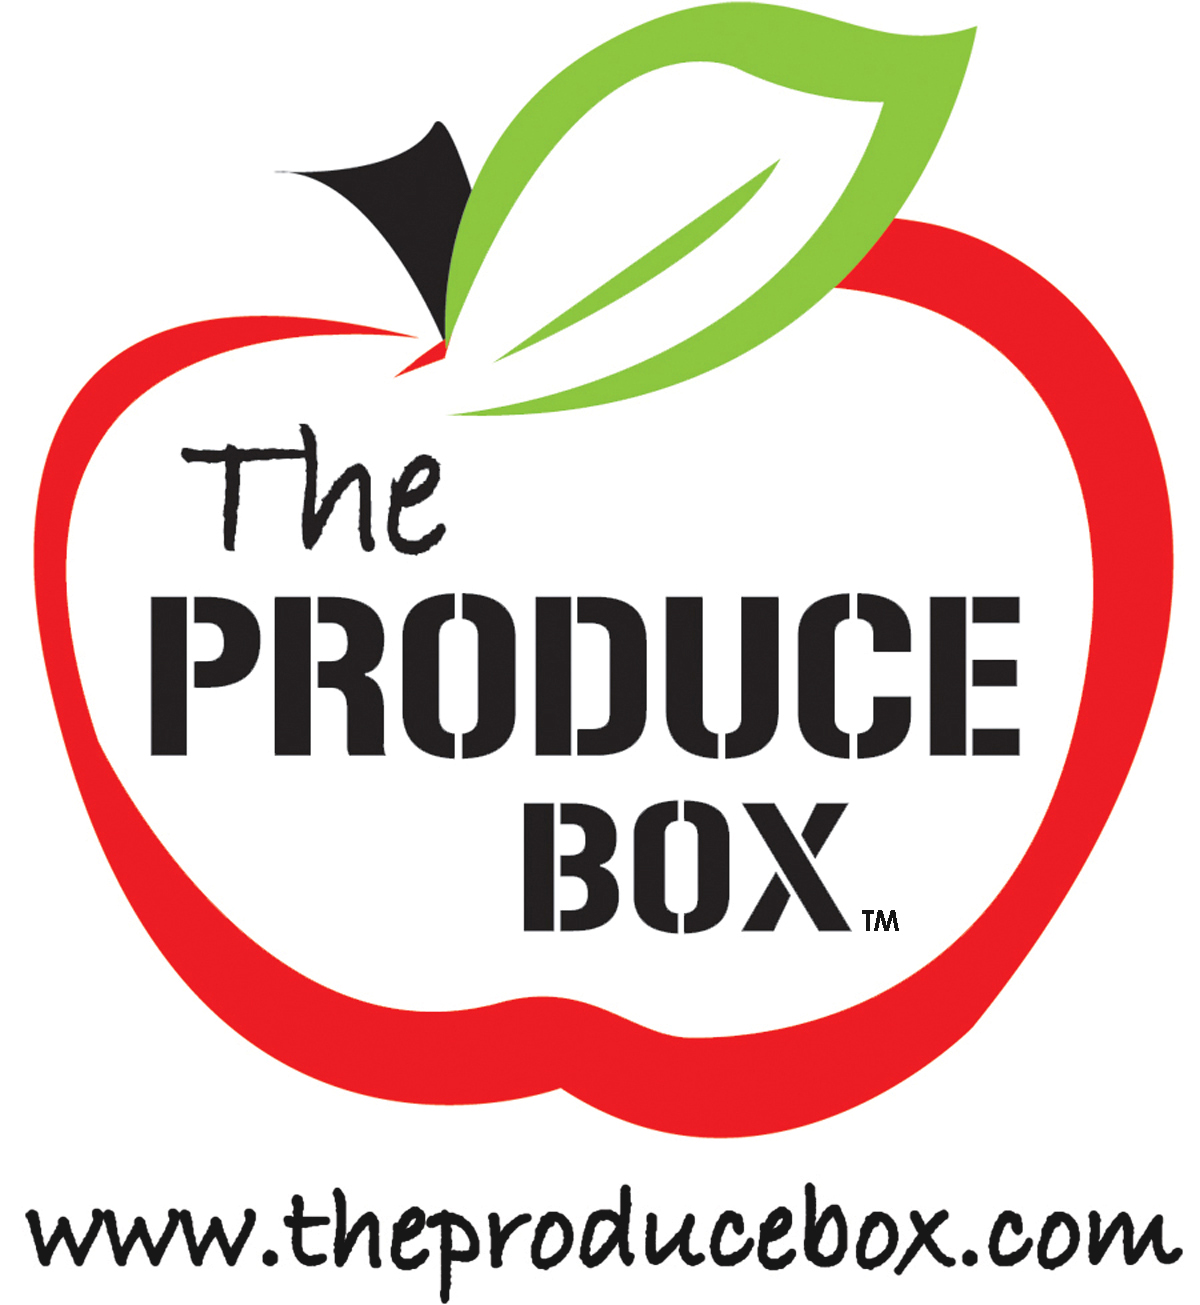 Meet The Produce Box Bringing The Farmers Market To Your